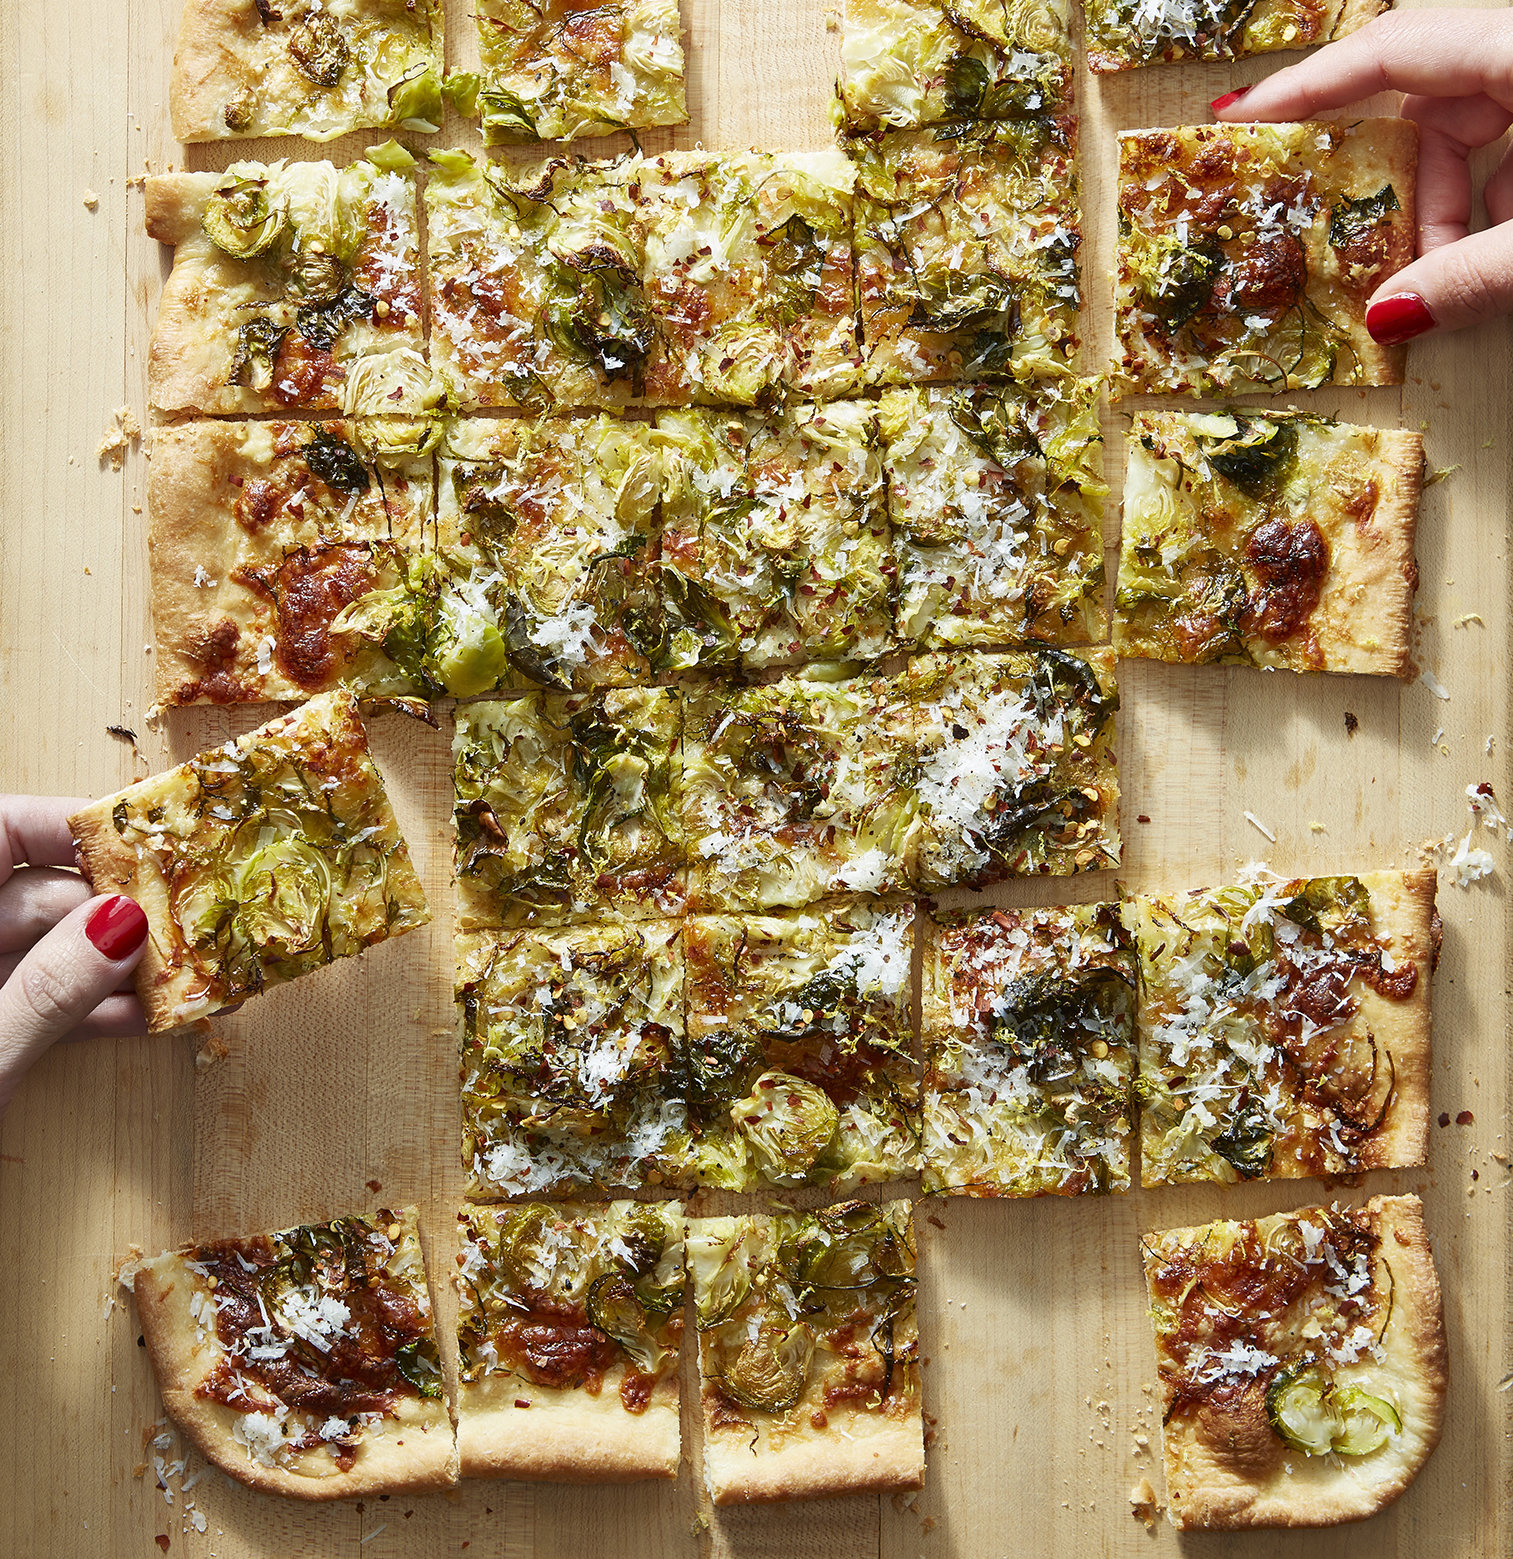 Brussels Sprout Pizza With Lemon and Pecorino (Engagement)